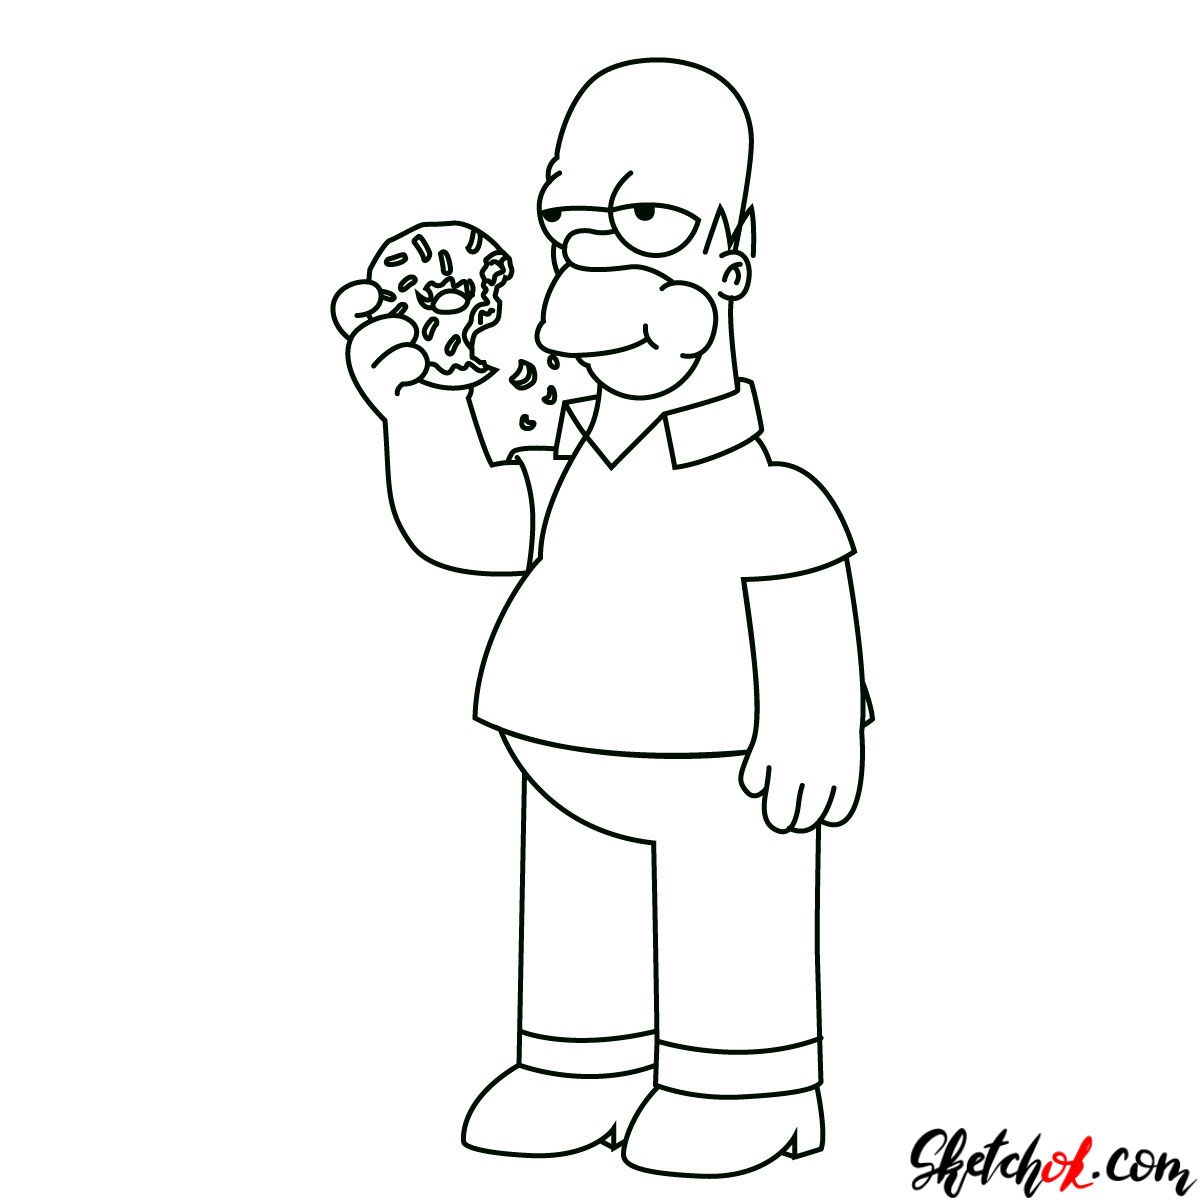 How To Draw Homer Simpson Eating A Donut